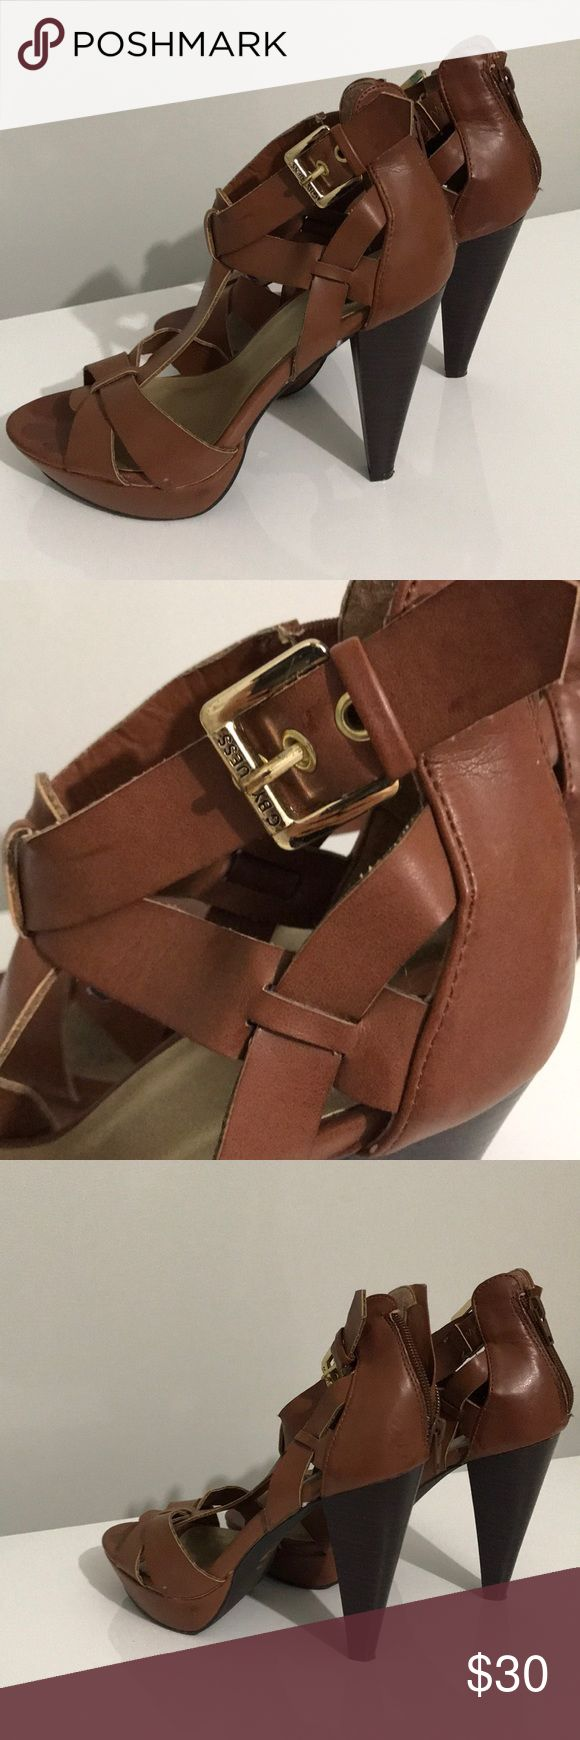 Brown guess thick heel size 7 women's Strappy brown leather heels with gold buckle  Zipper on back and adjustable ankle buckle  G by Guess  Worn once  Perfect for all seasons - neutral color and style  Can fit 7.5  Will measure heel if needed  Open toe strappy sandals summer cruise wear beach night out G by Guess Shoes Heels